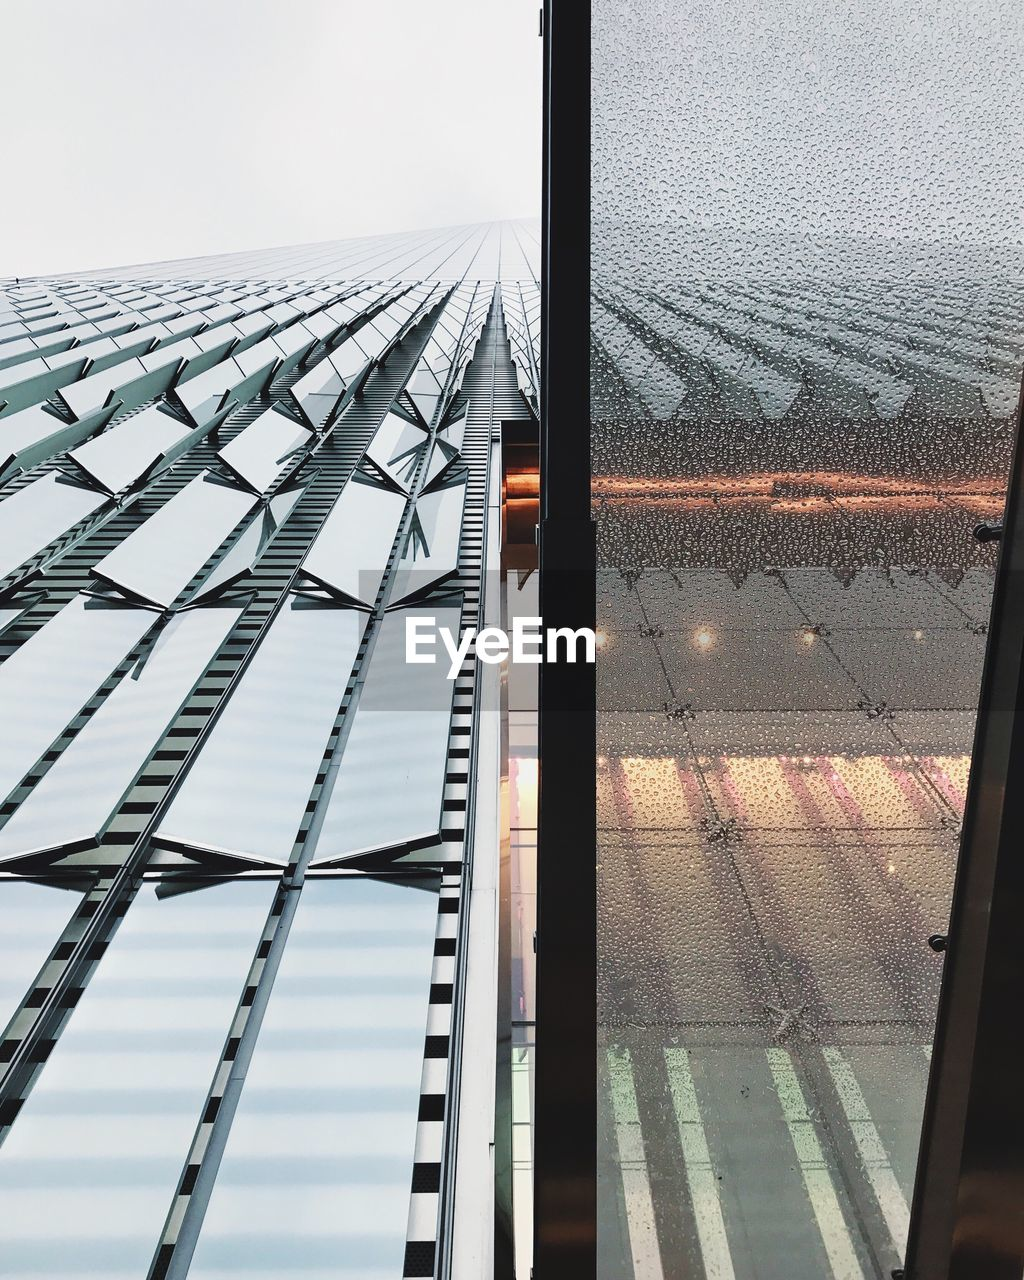 LOW ANGLE VIEW OF GREENHOUSE AGAINST SKY SEEN THROUGH METAL GRATE